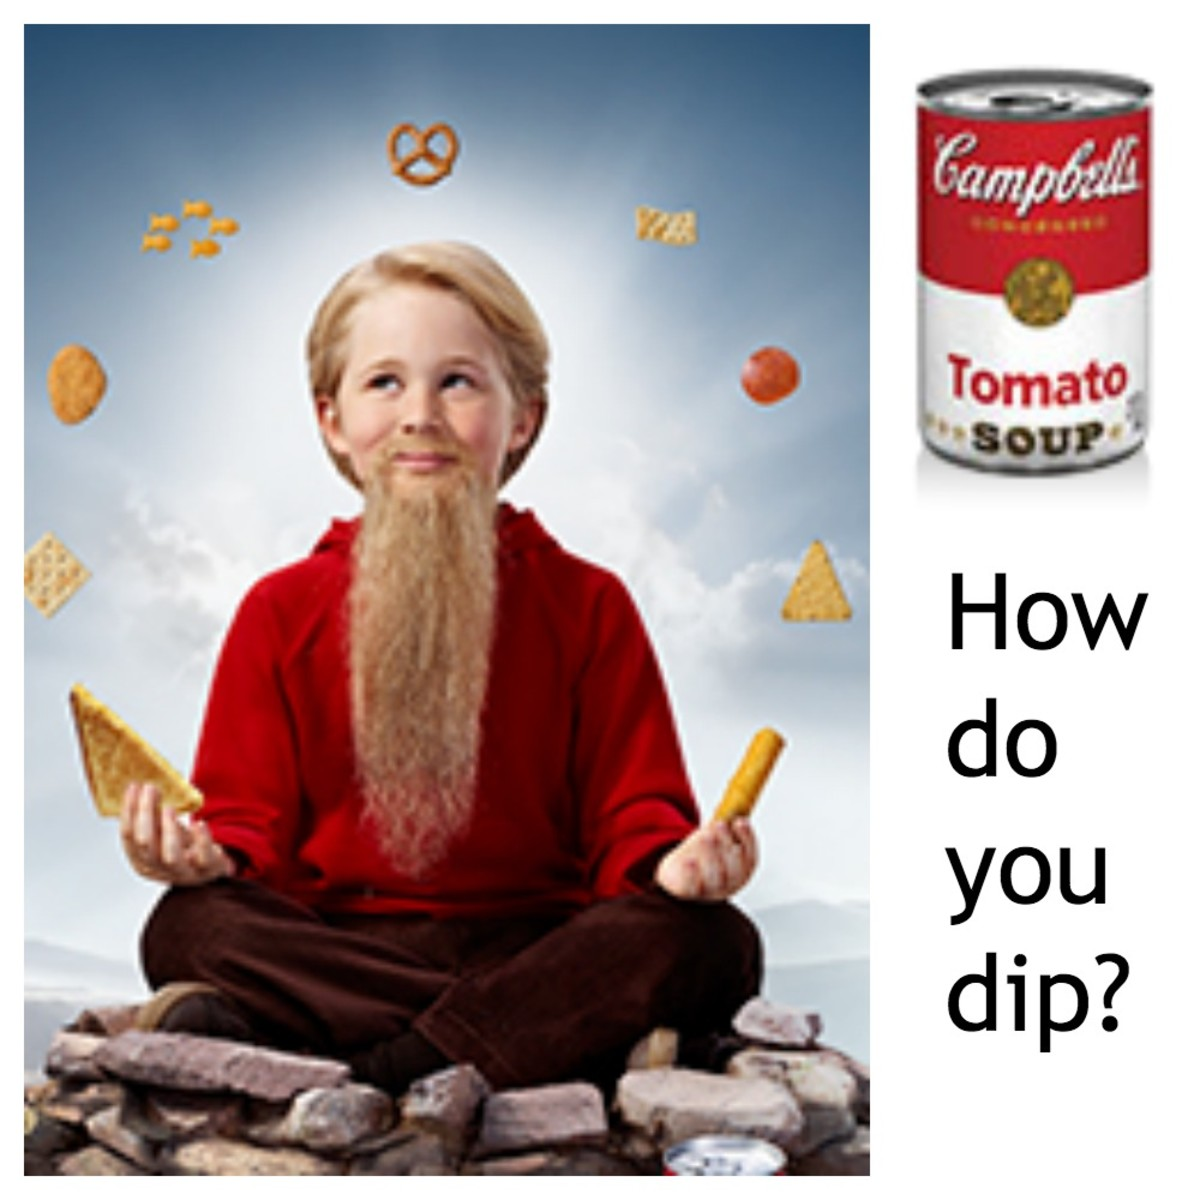 campbell's wisest kid, cream of tomato soup, dipable soup